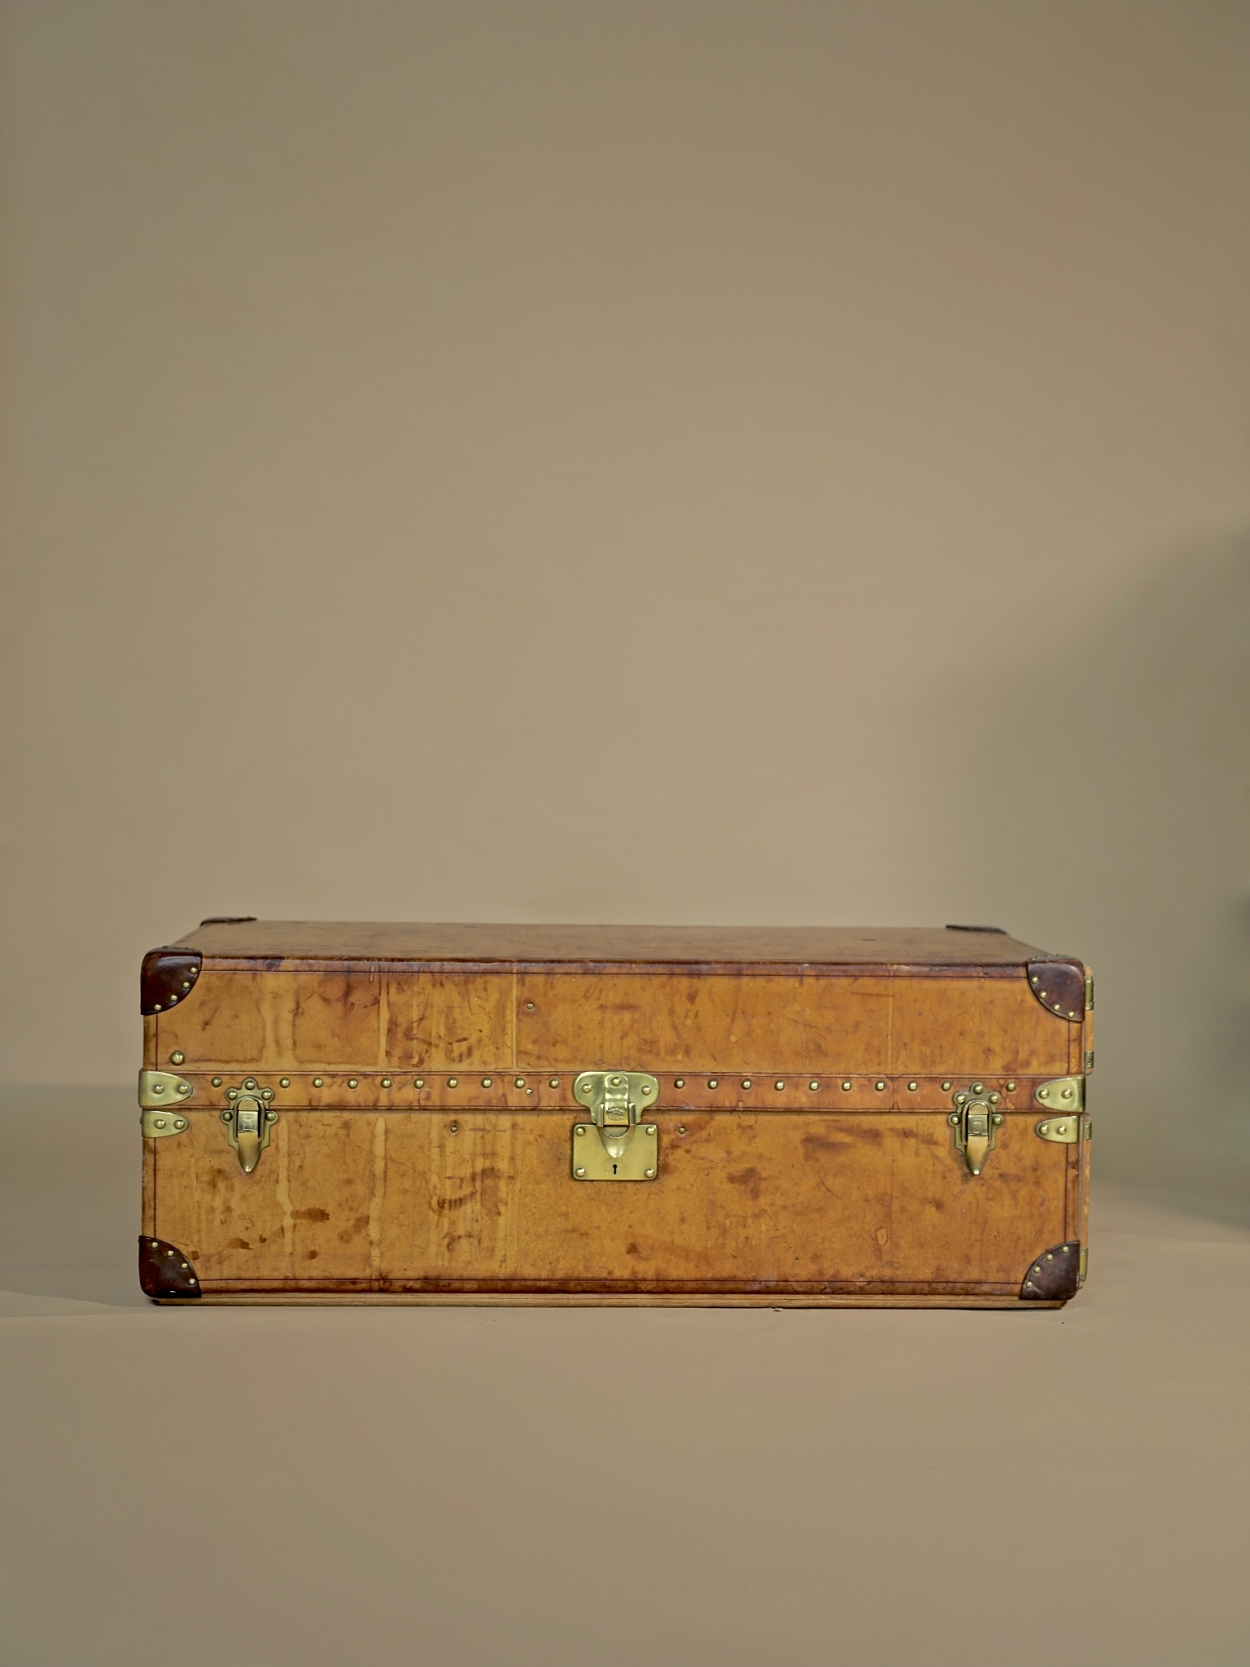 the-well-traveled-trunk-louis-vuitton-thumbnail-product-5738-1